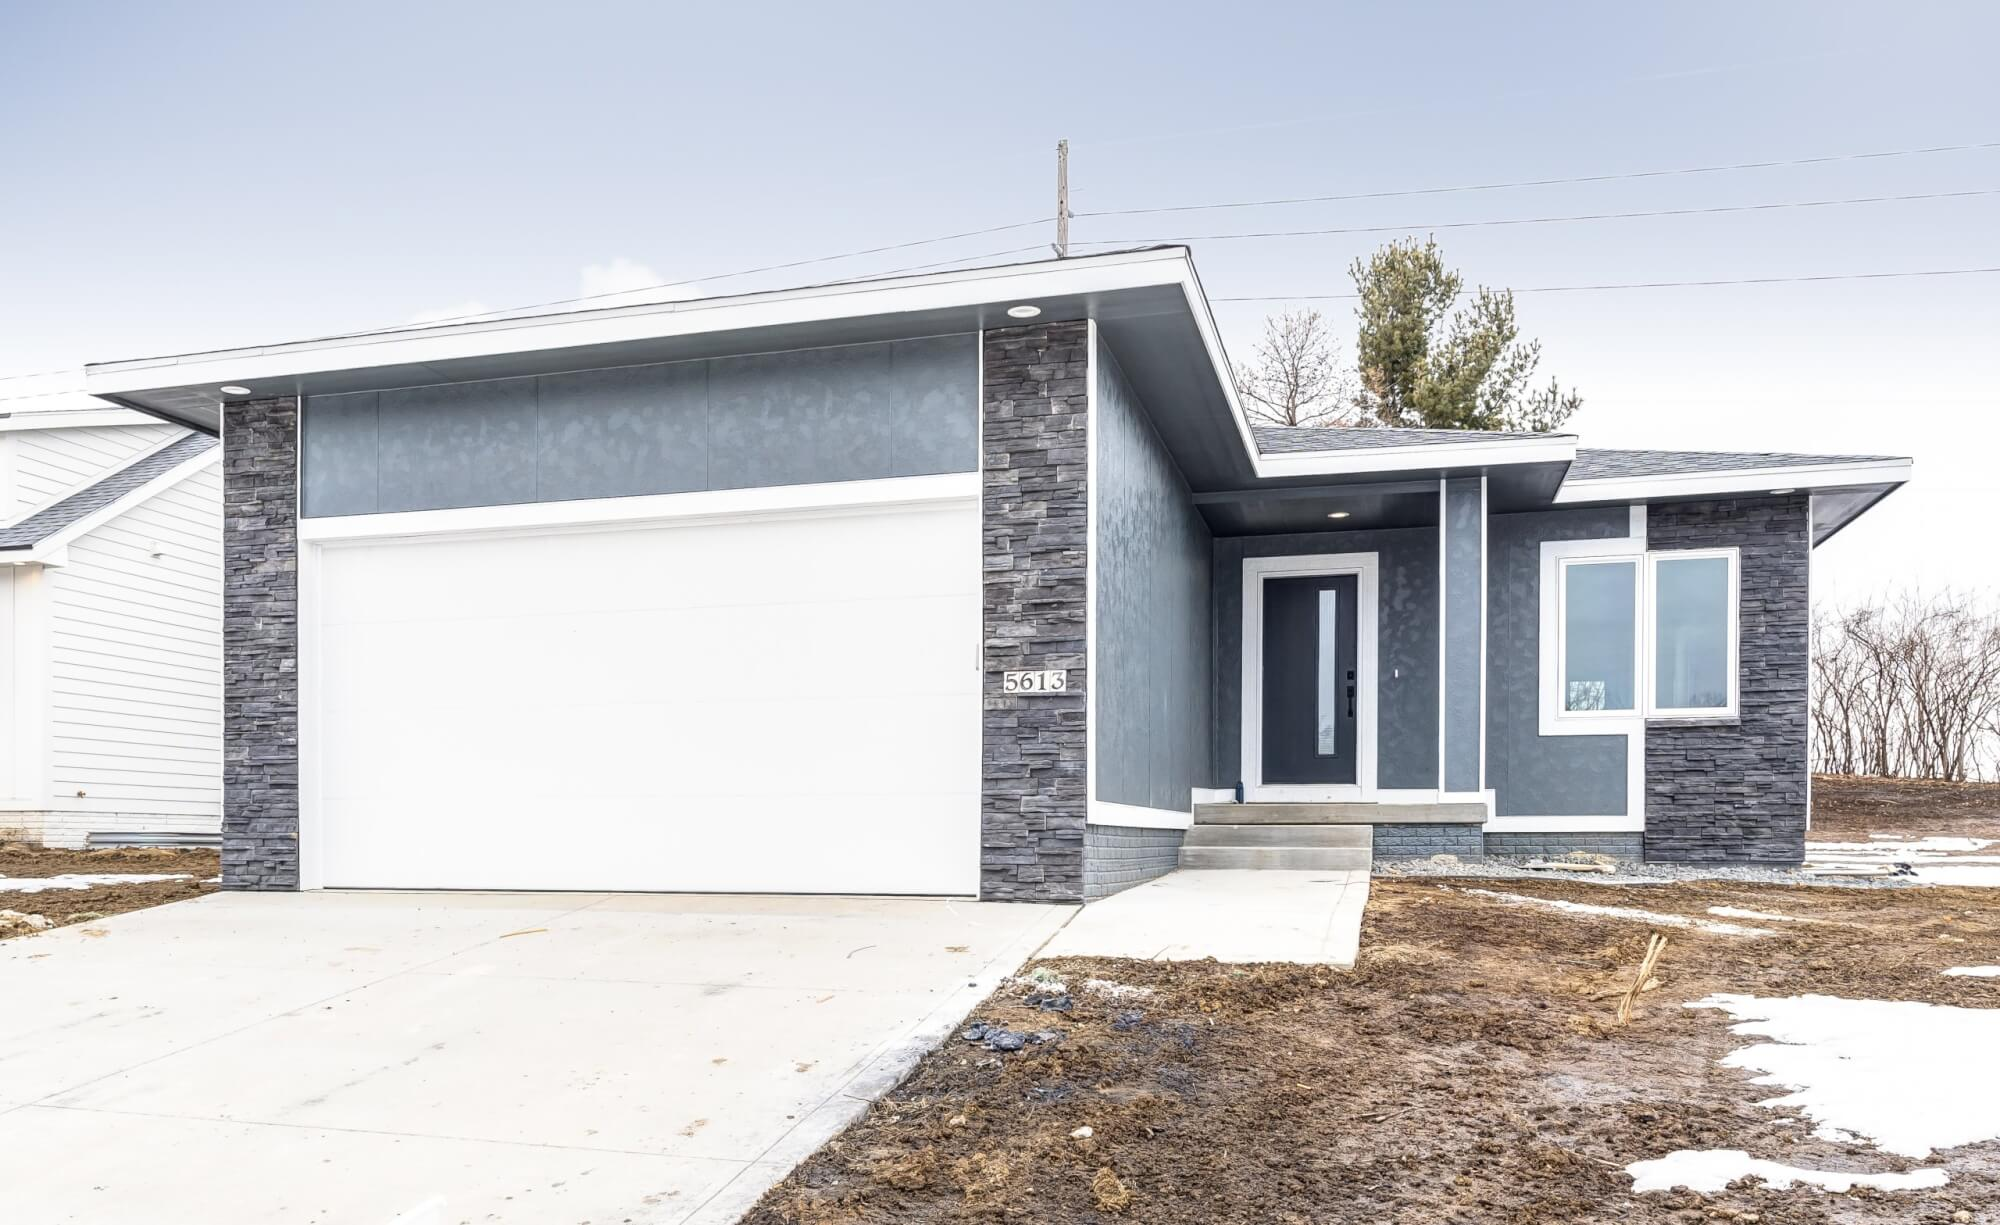 A grey house with metal and stone exterior, built by Kruse Development.